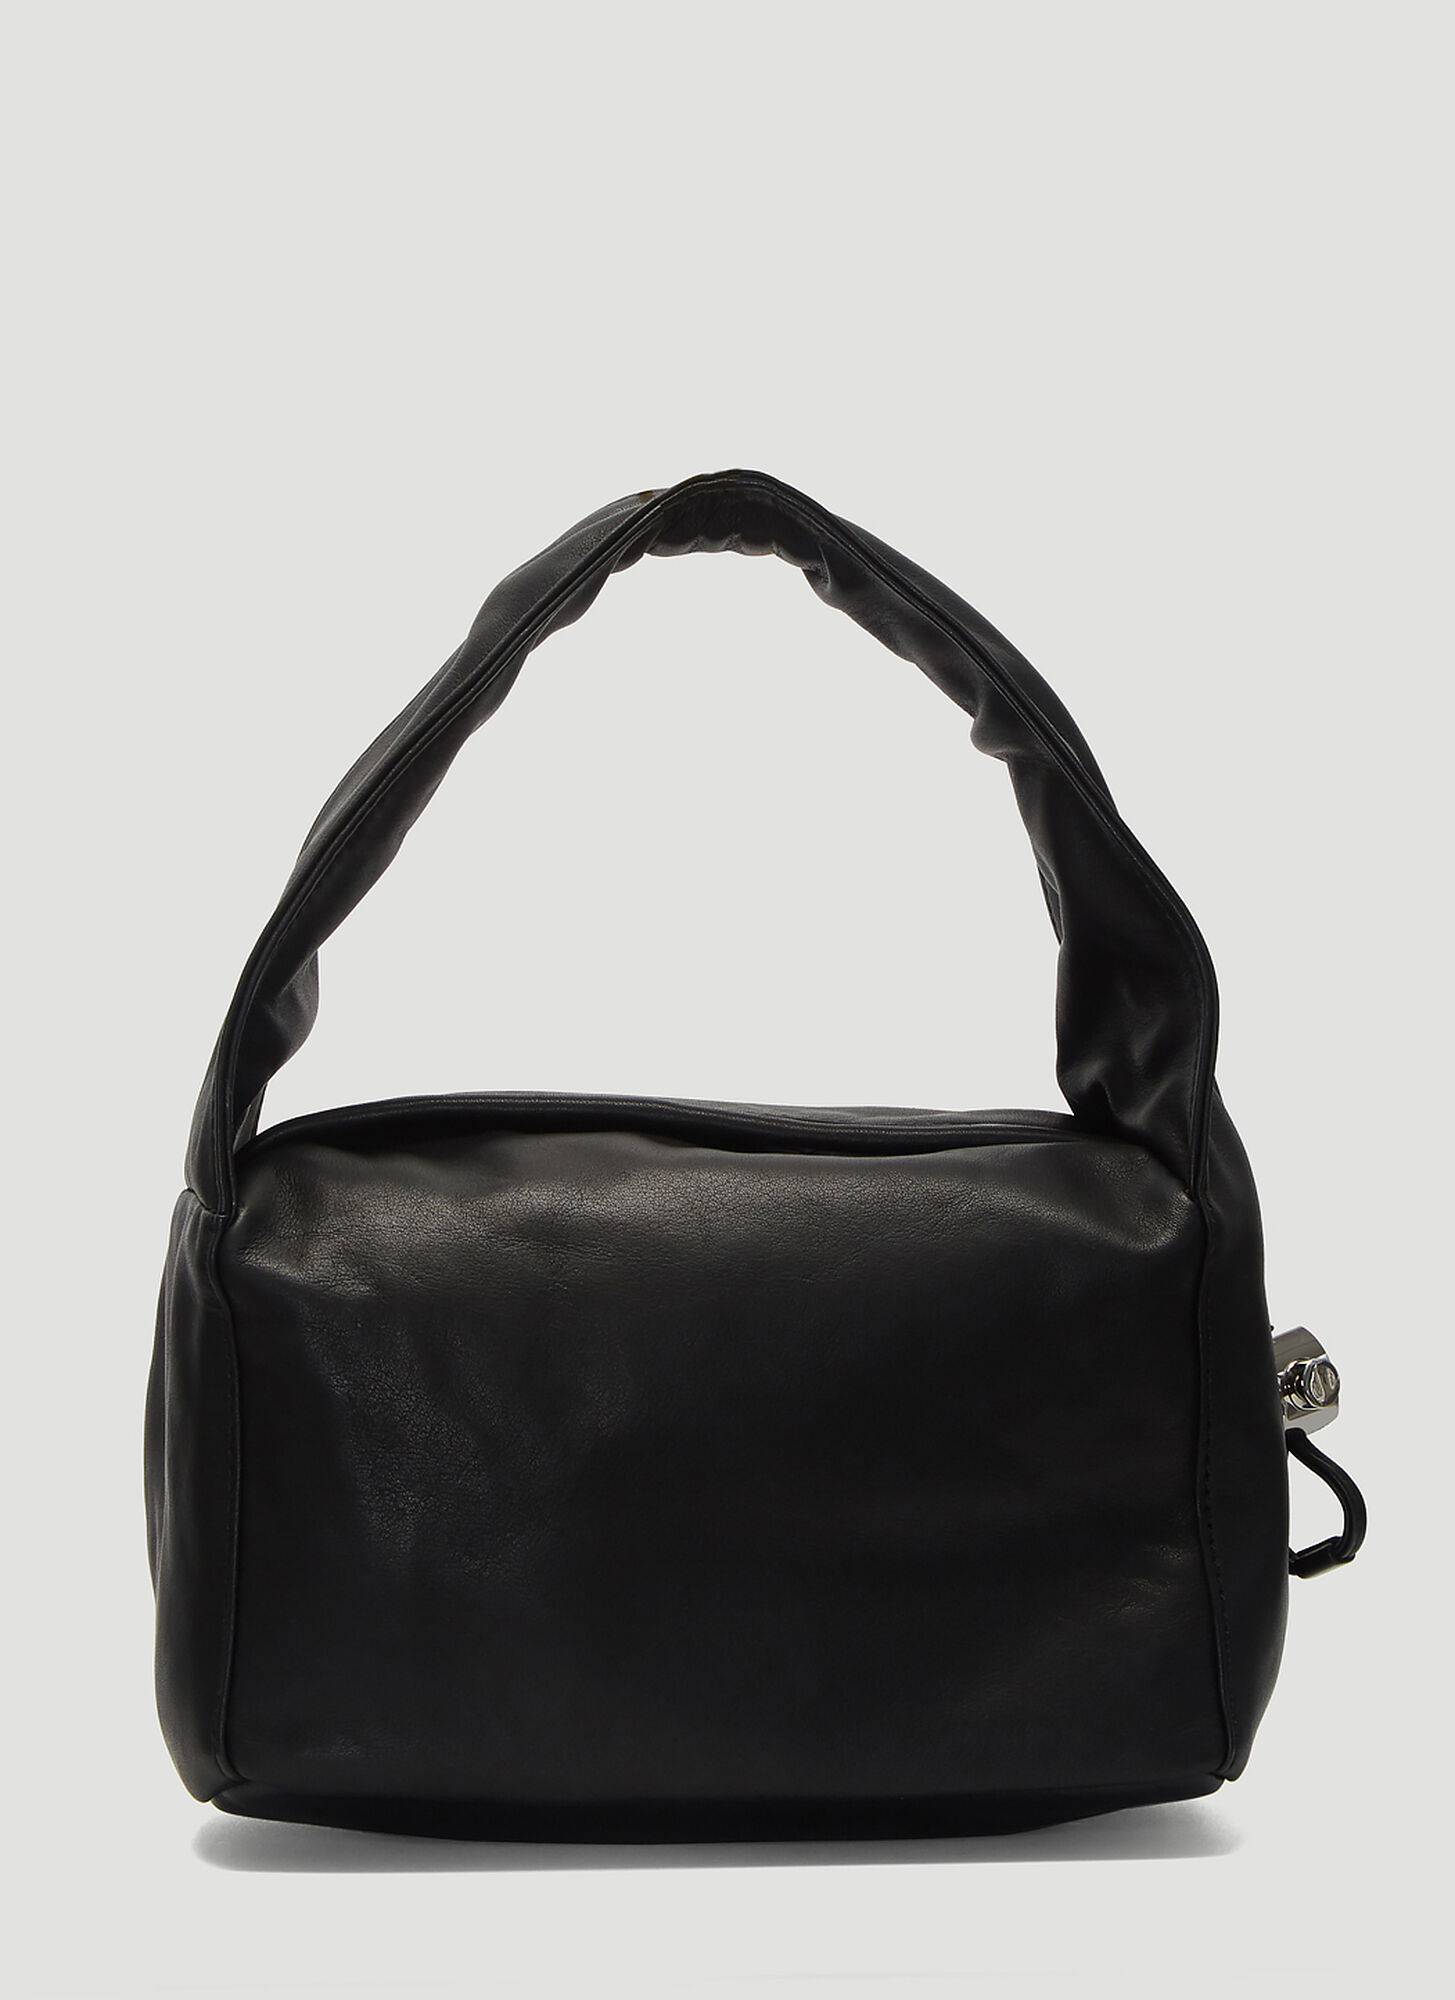 Kara Baby Cloud Leather Bag in Black